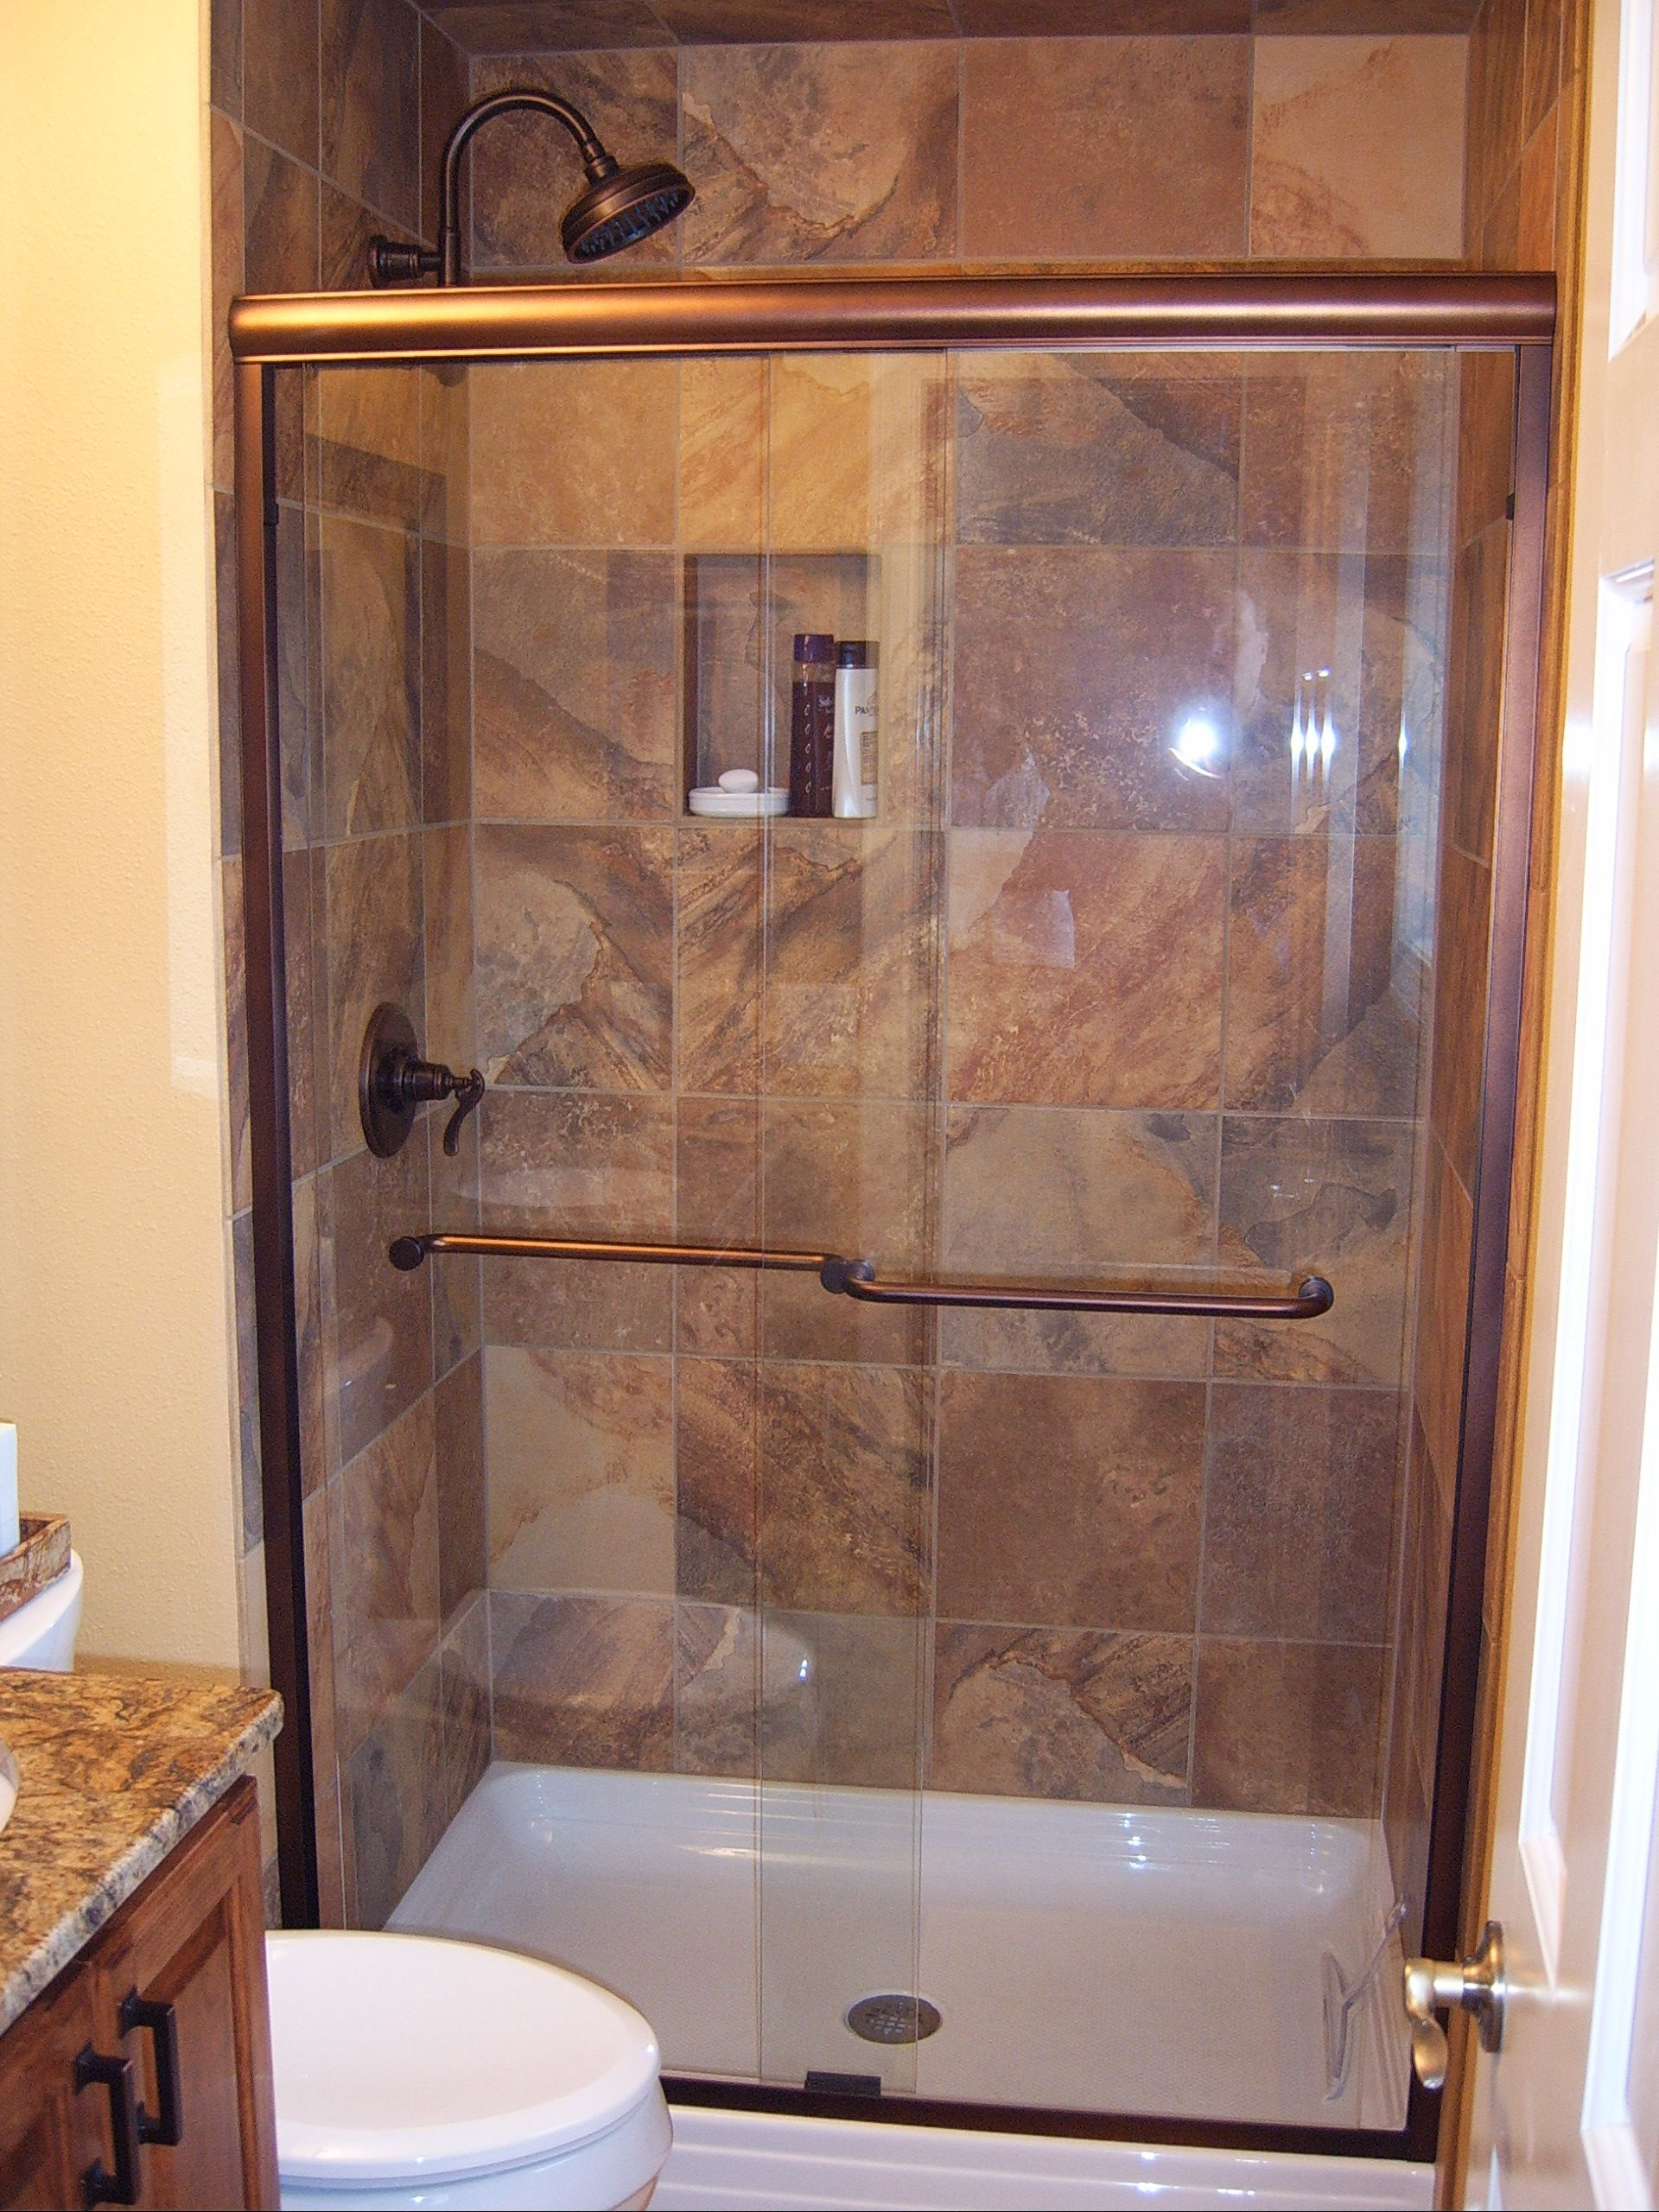 Bathroom Small Decorating Ideas Tight Budget Fireplace Remodeling - Bathroom renovation on a tight budget